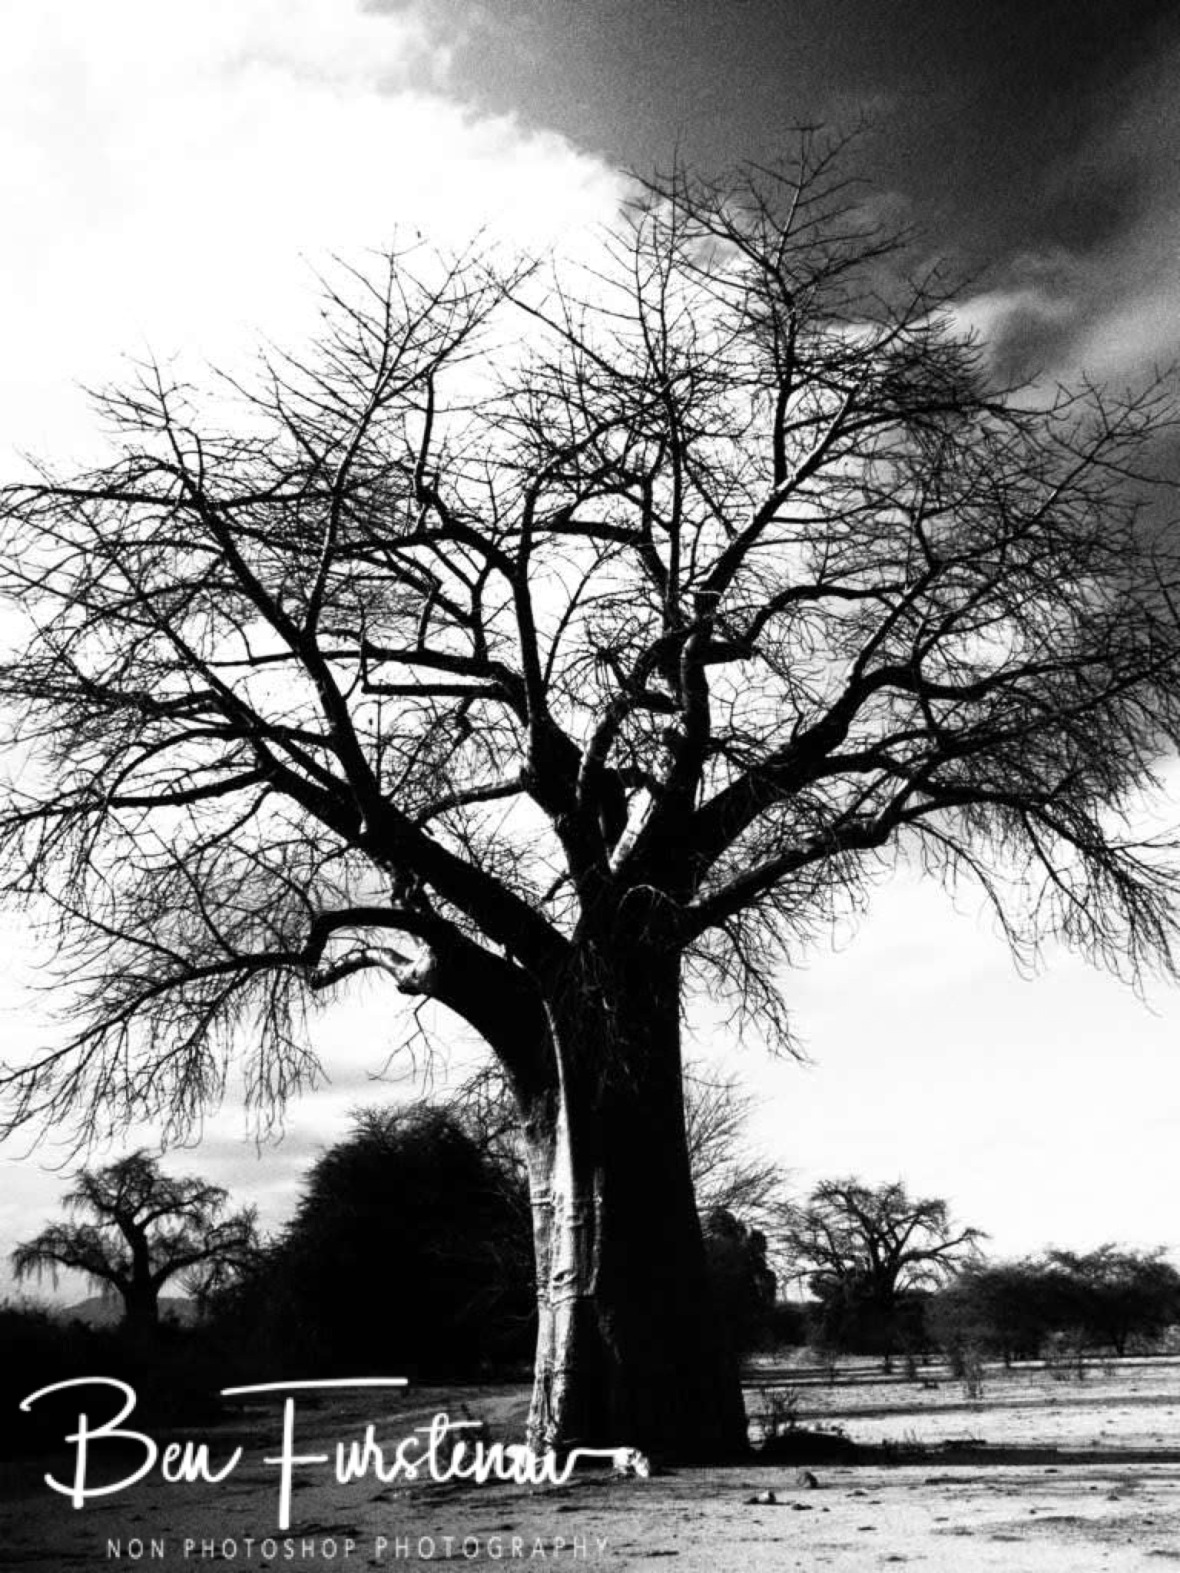 Baobab forrest Black and white, Tete, Mozambique